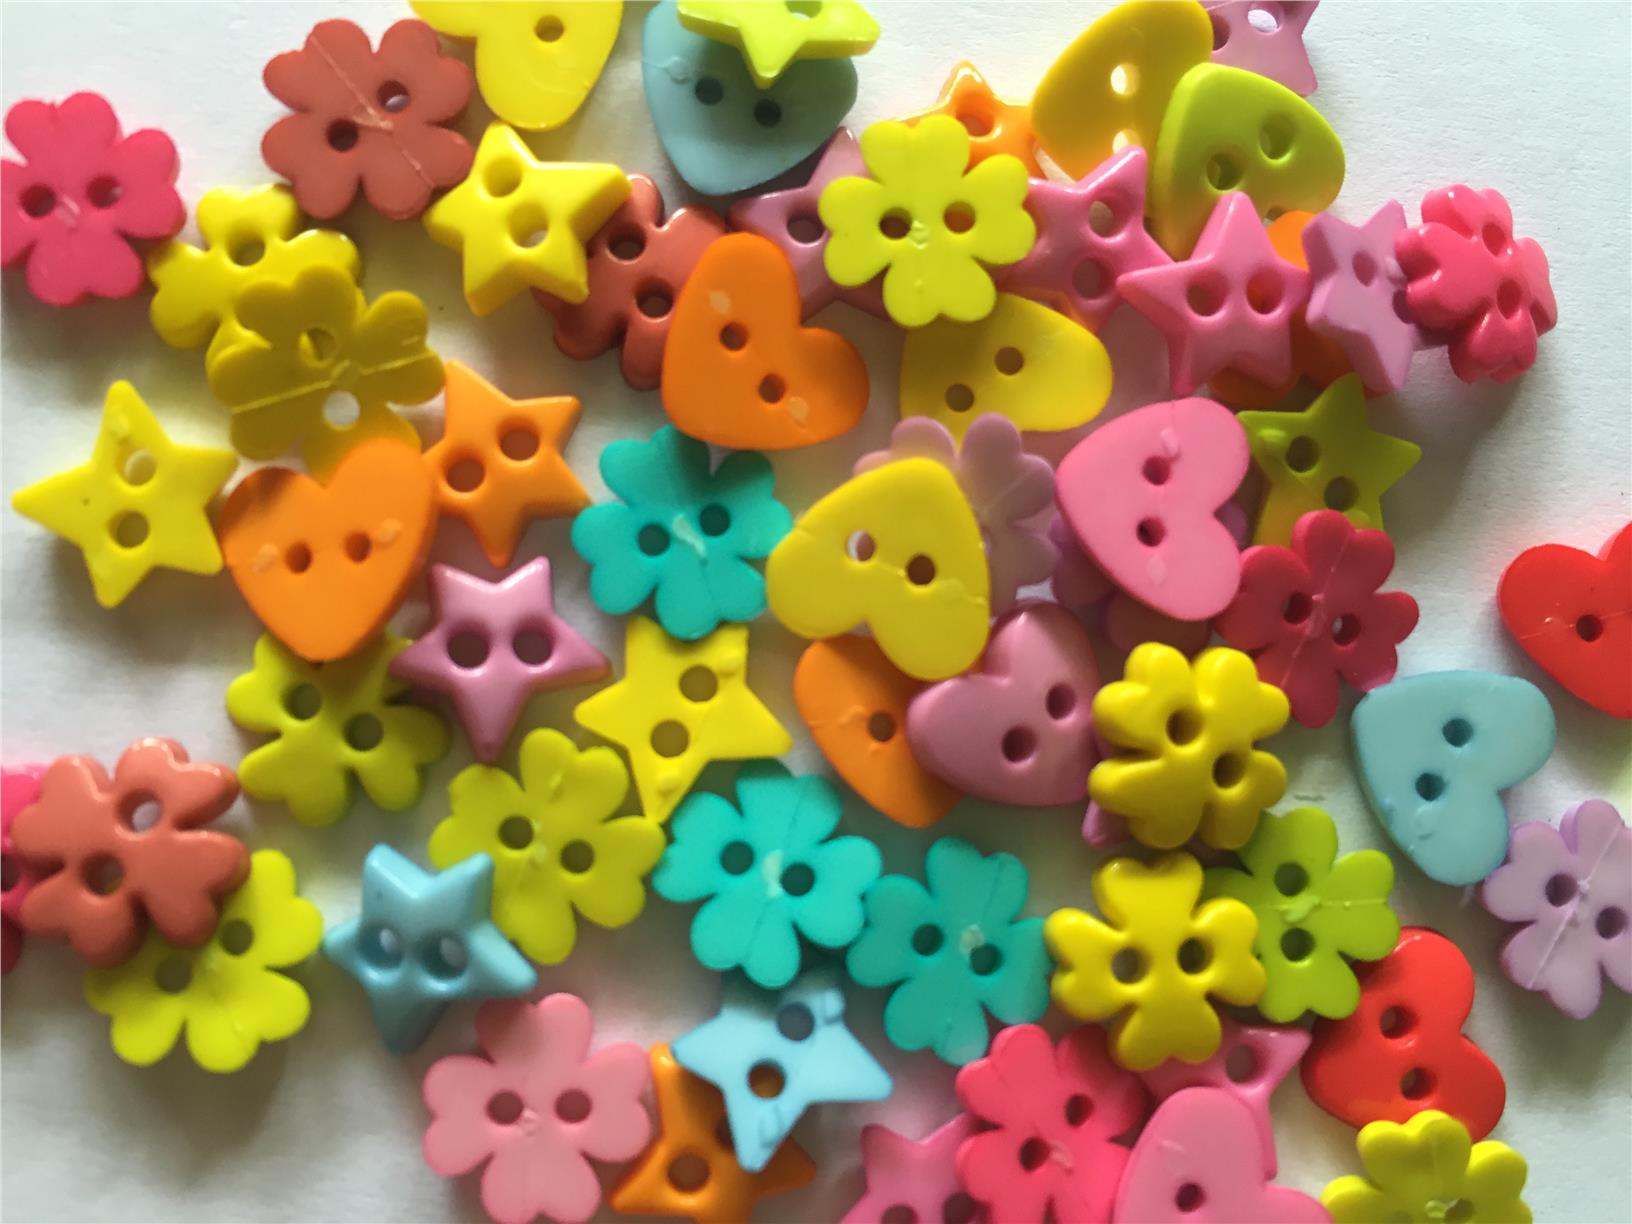 80 pcs mix shape button assorted buttons